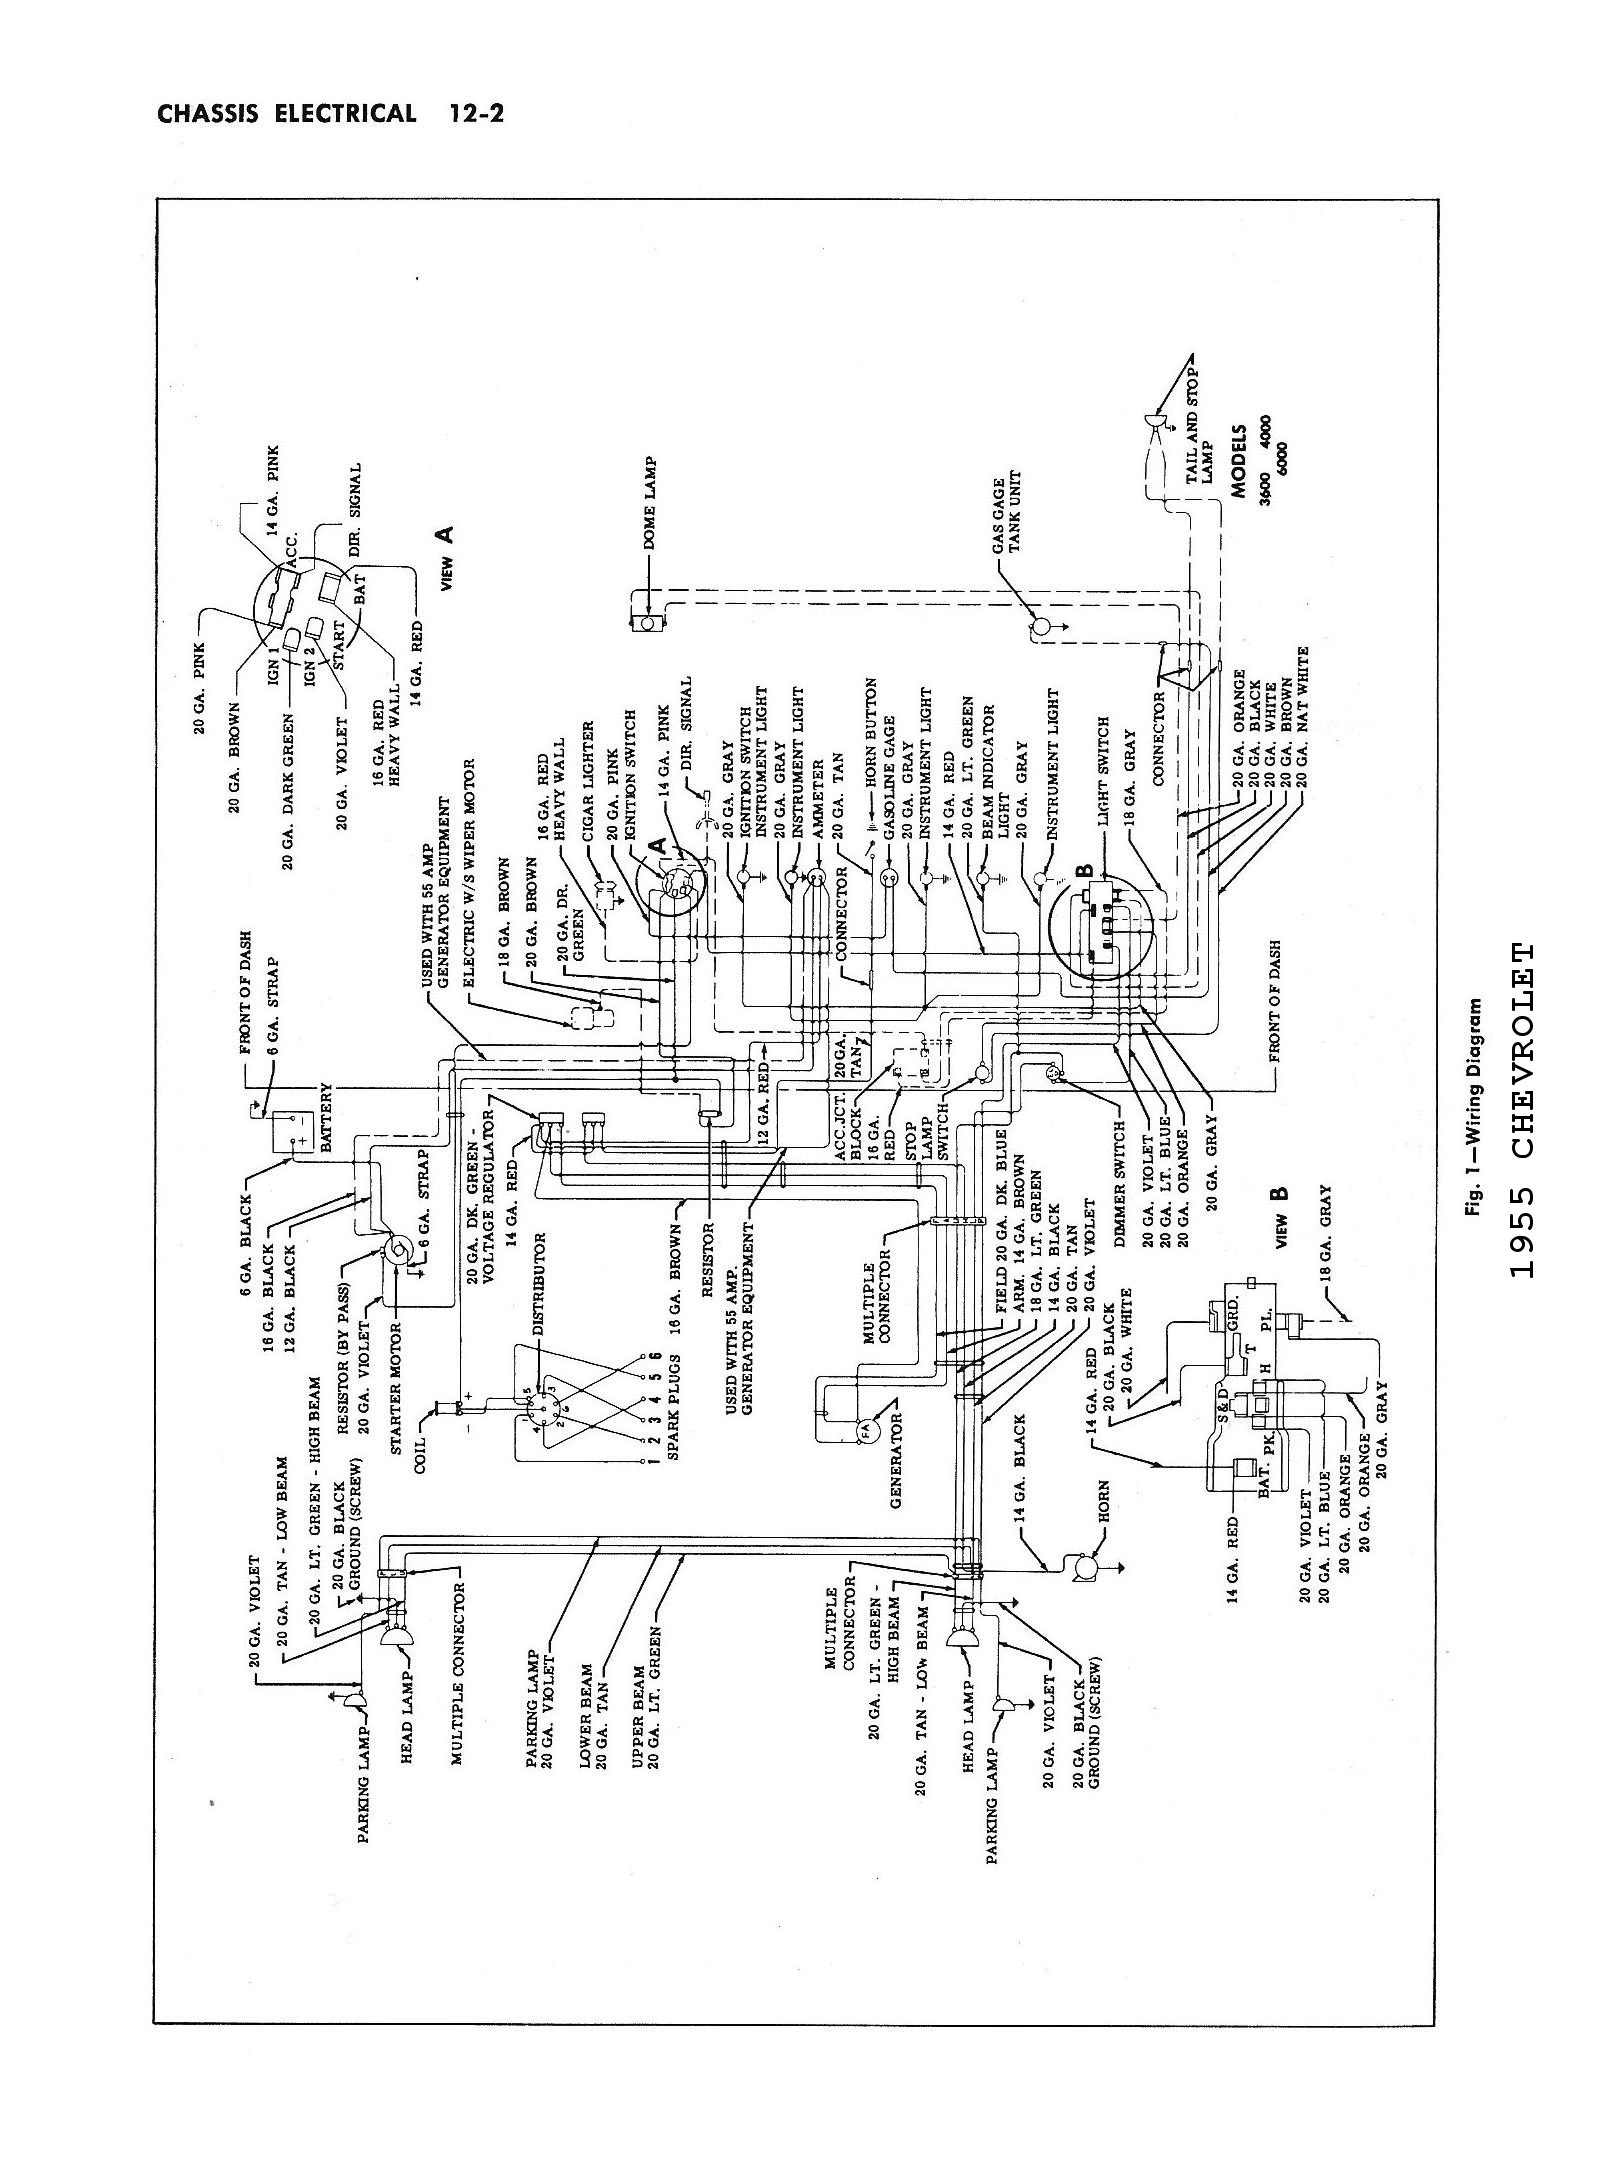 Chevy Wiring Diagrams Light Switch Circuit Diagram 1955 Car Passenger Truck